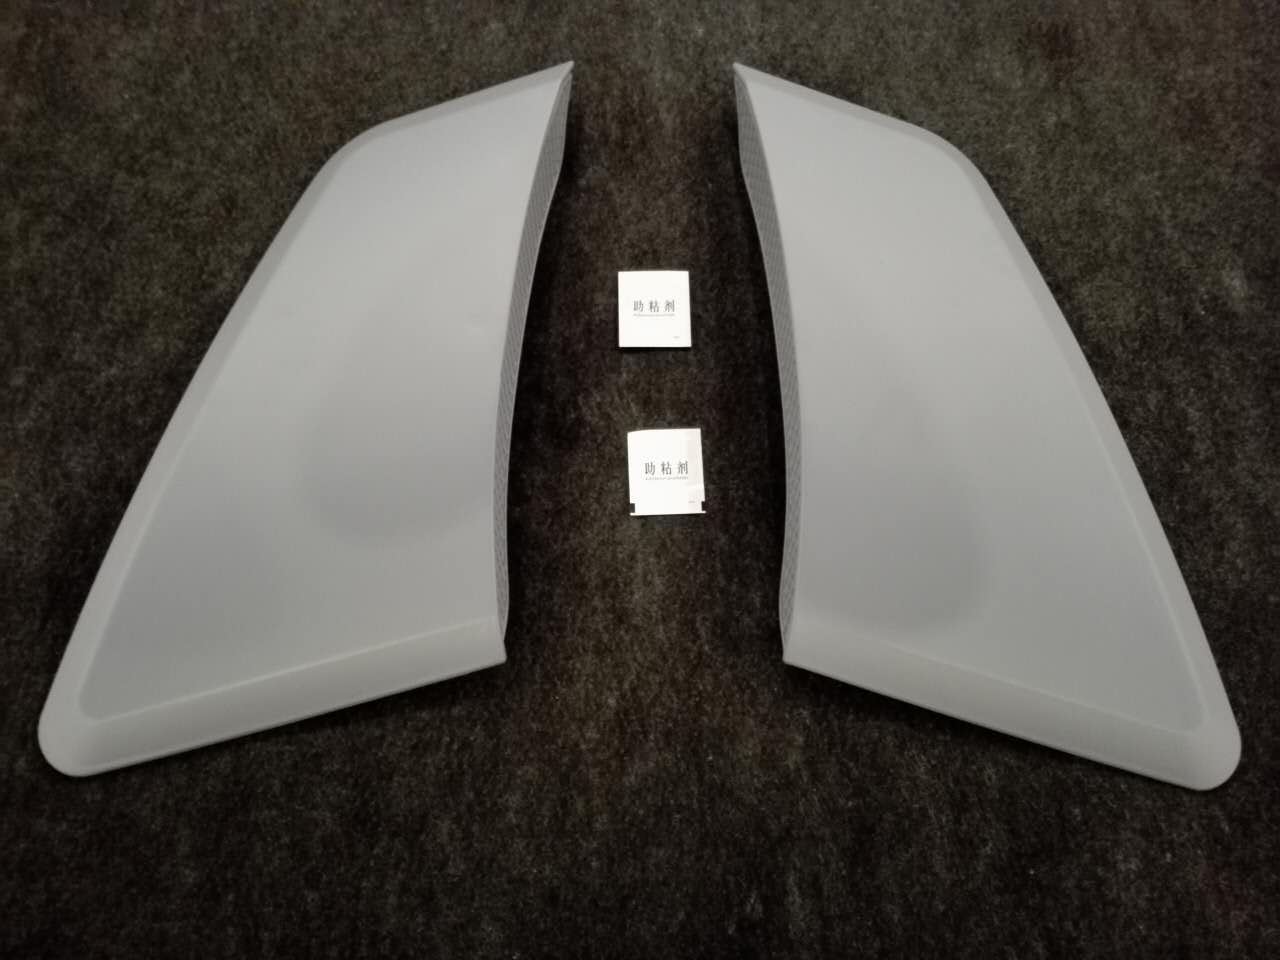 2015-17 Mustang Lower GT Style Door Scoops - PAIR - Polyurethane